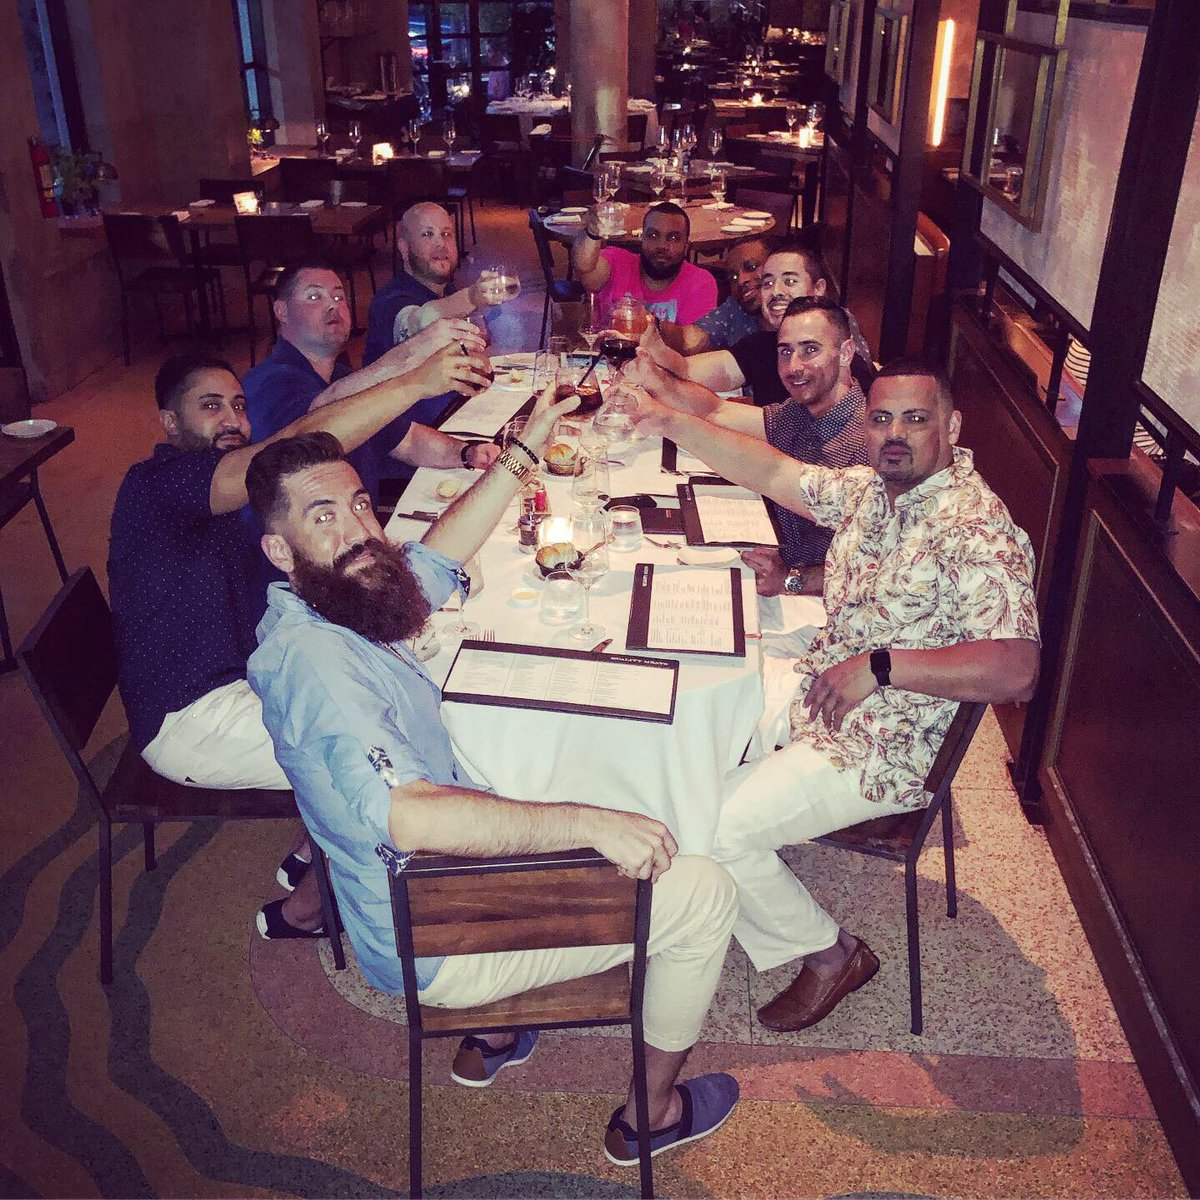 Celebrating the primos bachelor party #southbeach #miami #slspoolparty #oceandrive #qualitymeats #Goodtimes #BachelorParty